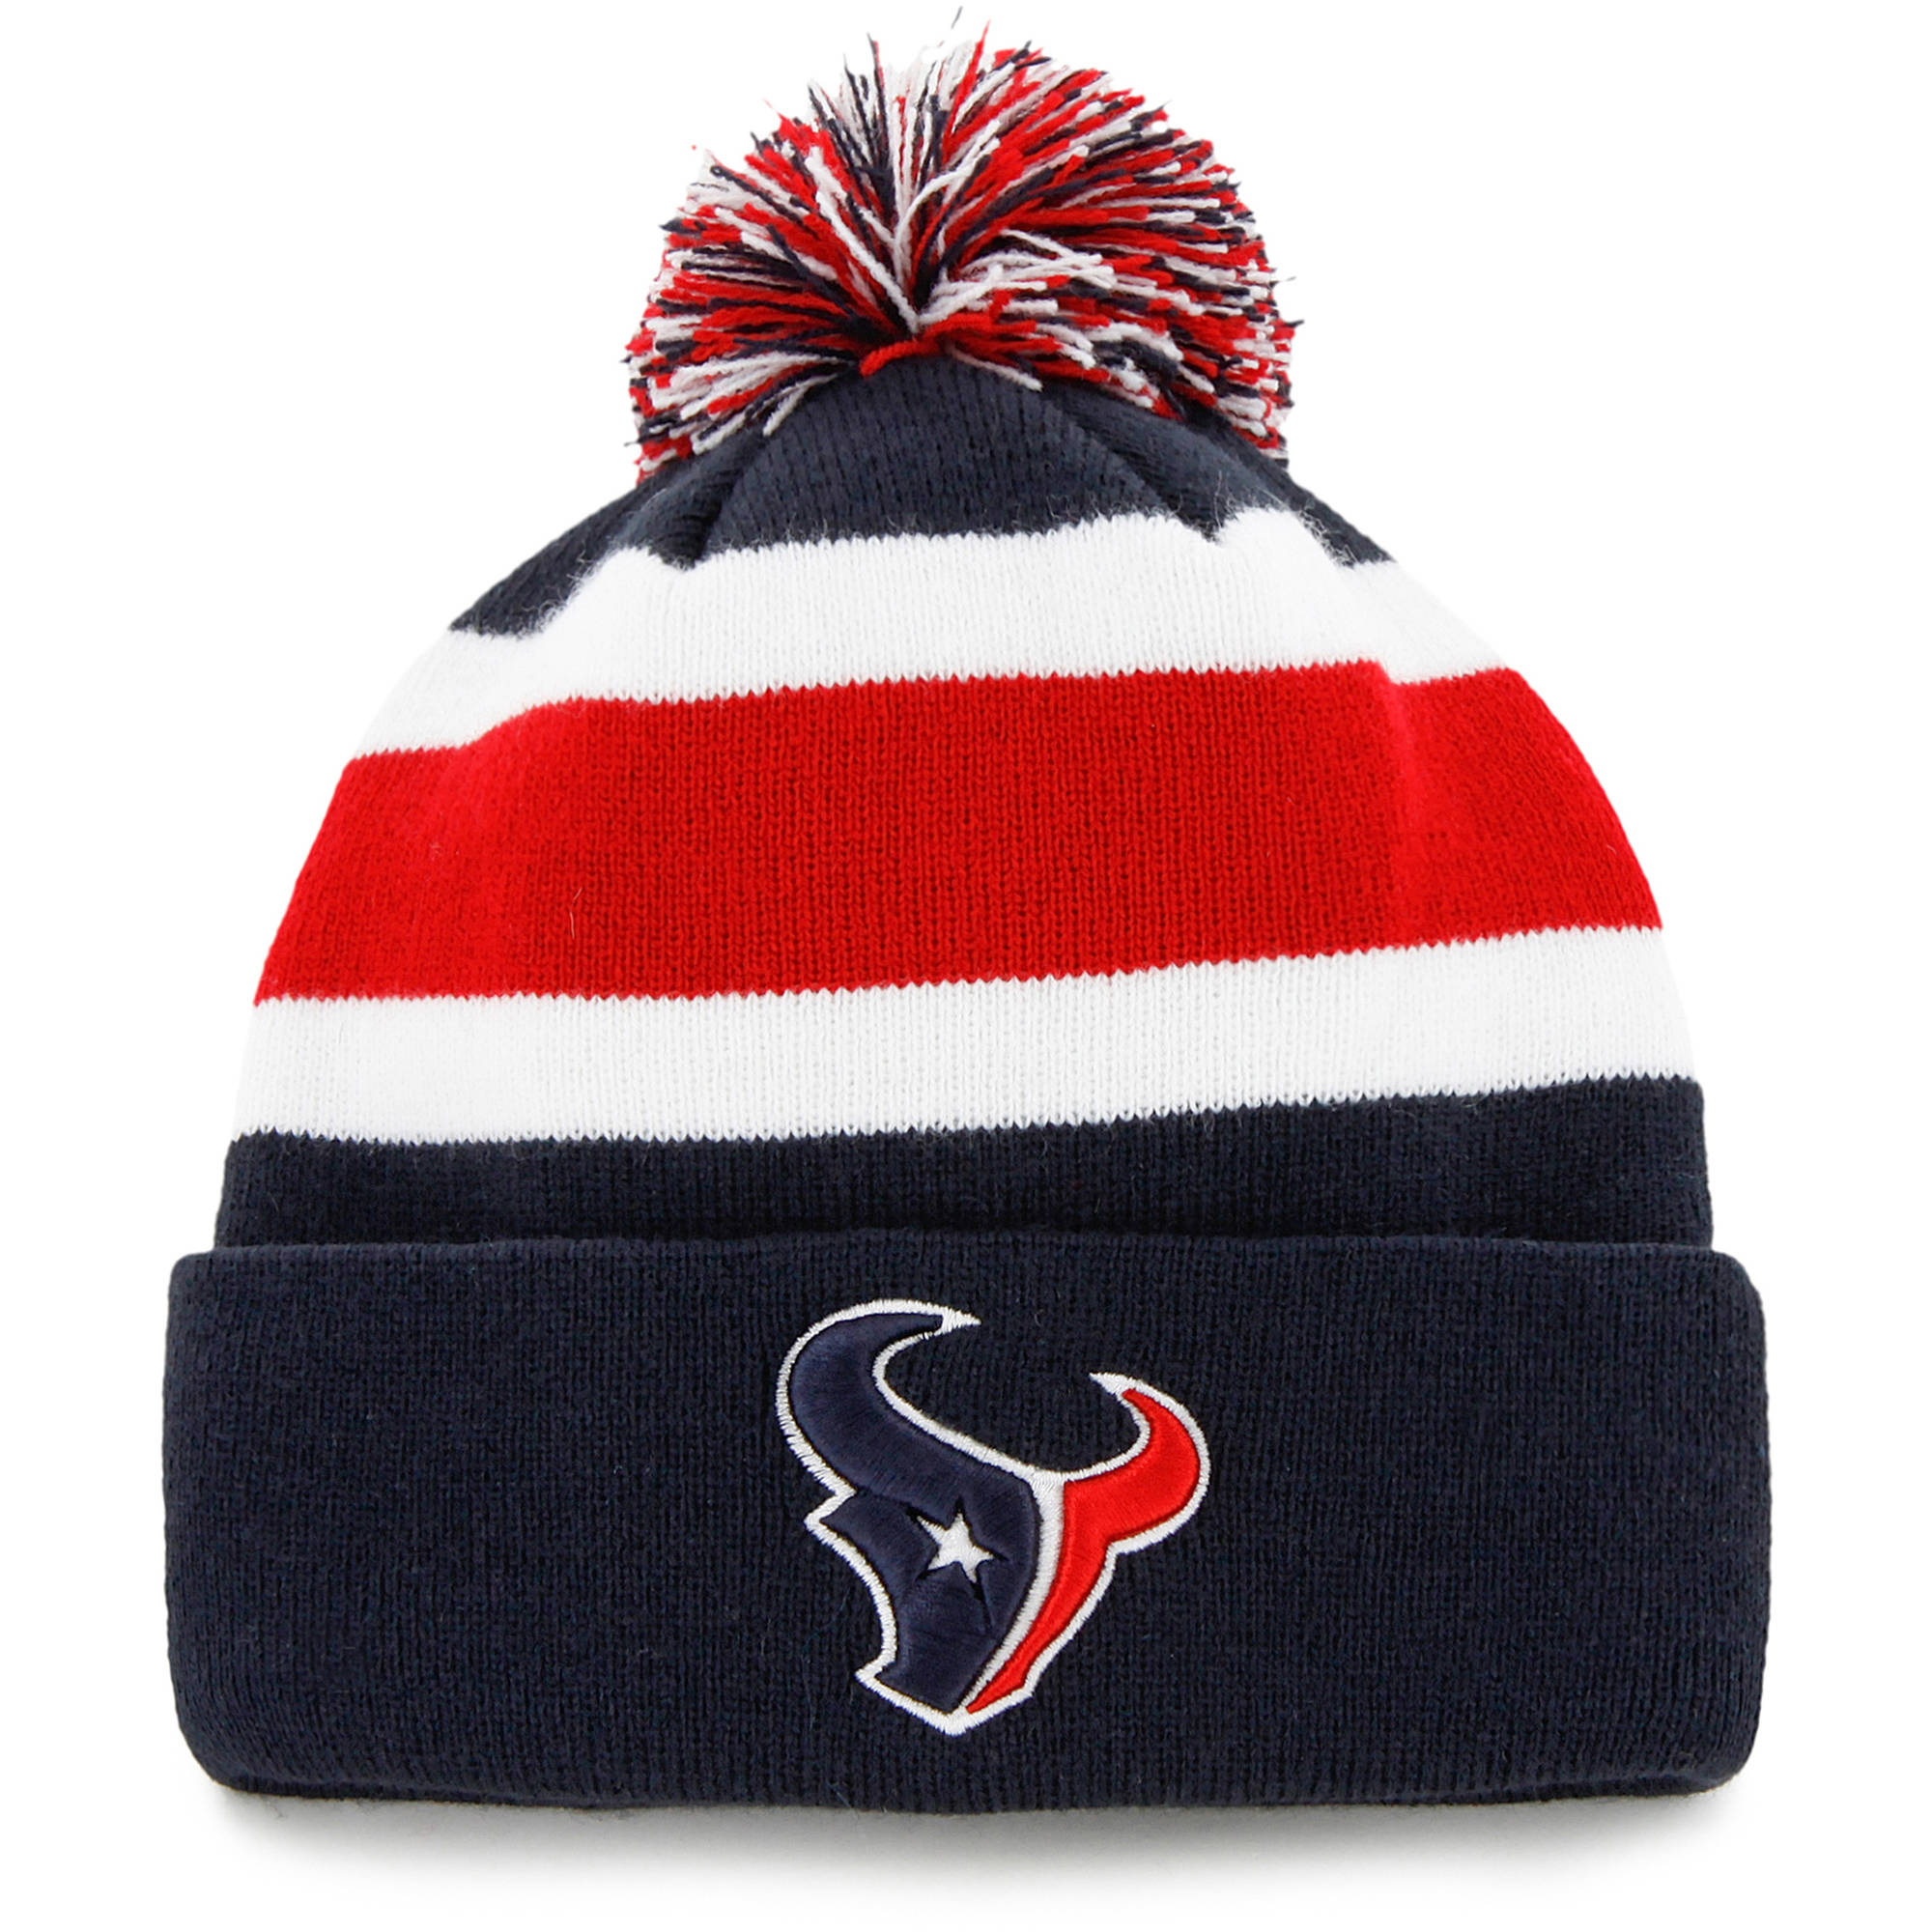 NFL Houston Texans Breakaway Knit Beanie with Pom by Fan Favorite